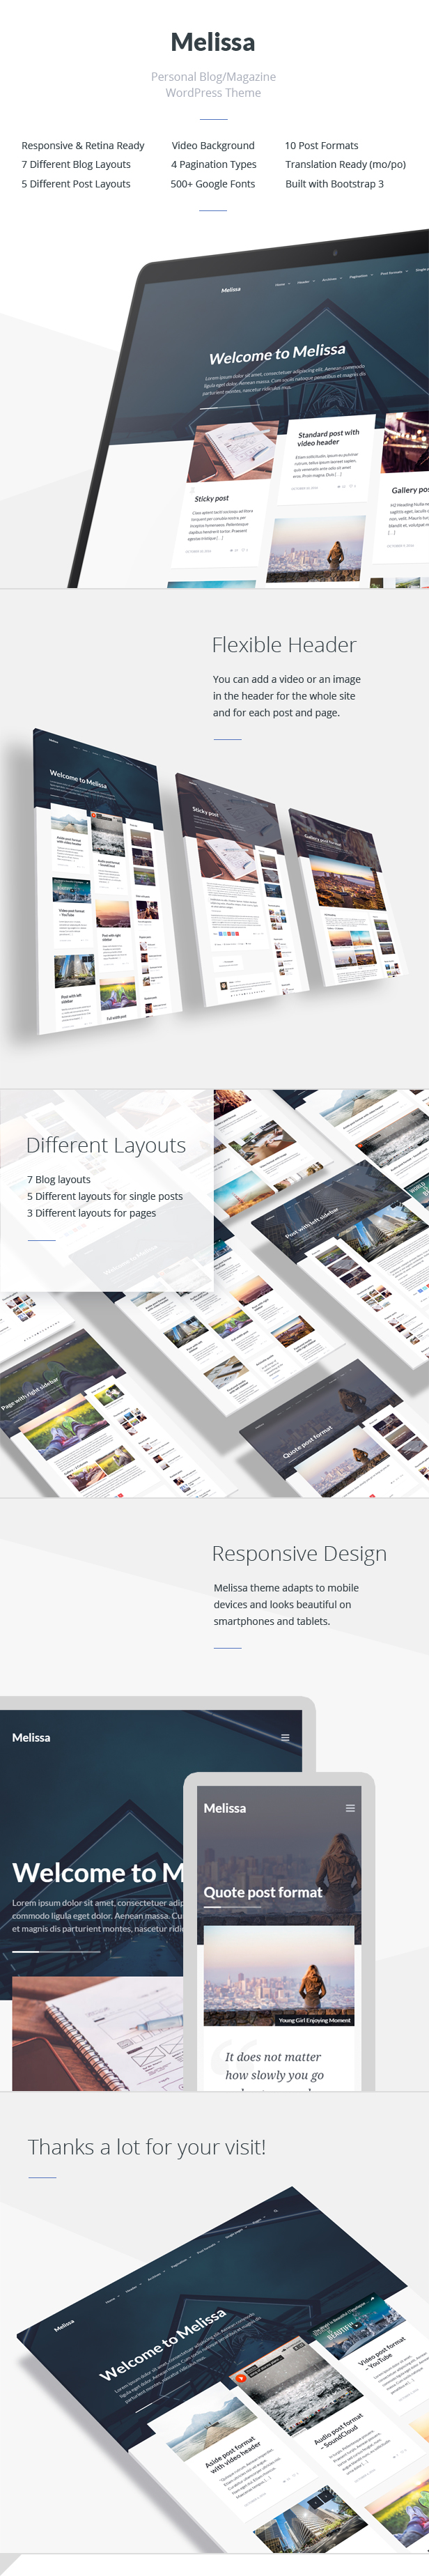 Melissa WordPress Theme - Features